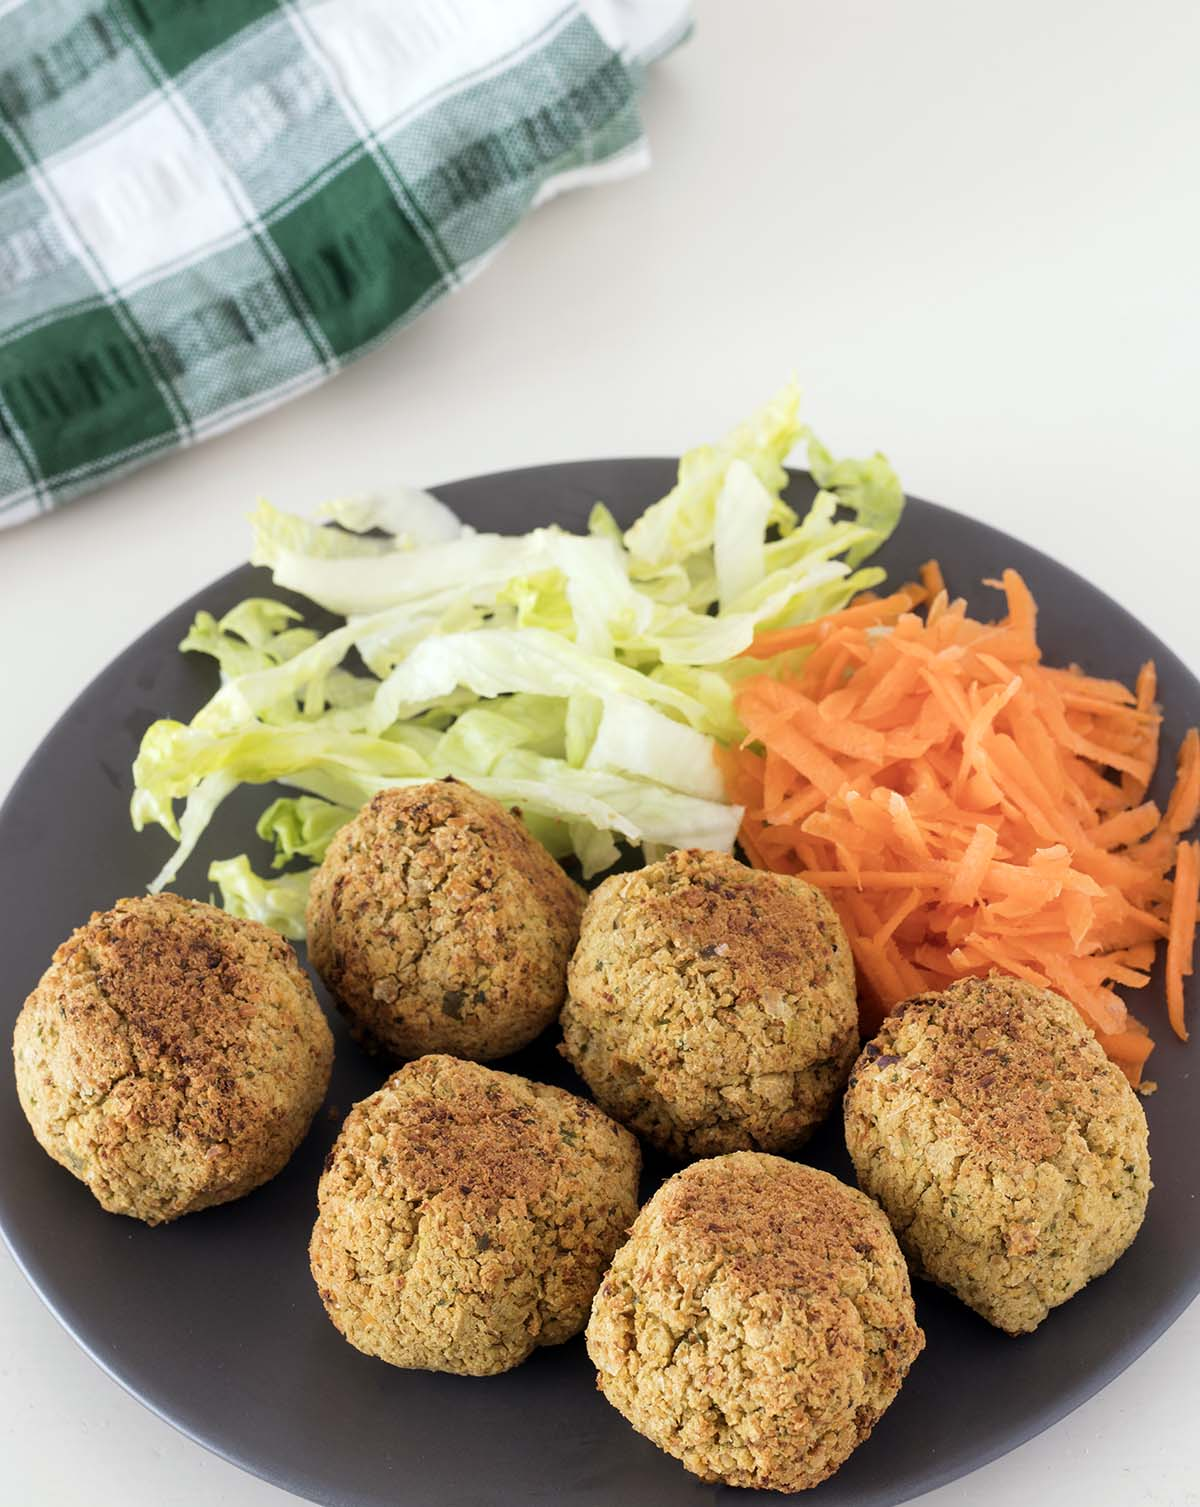 cauliflower falafel (baked) on plate with shredded lettuce and grated carrot